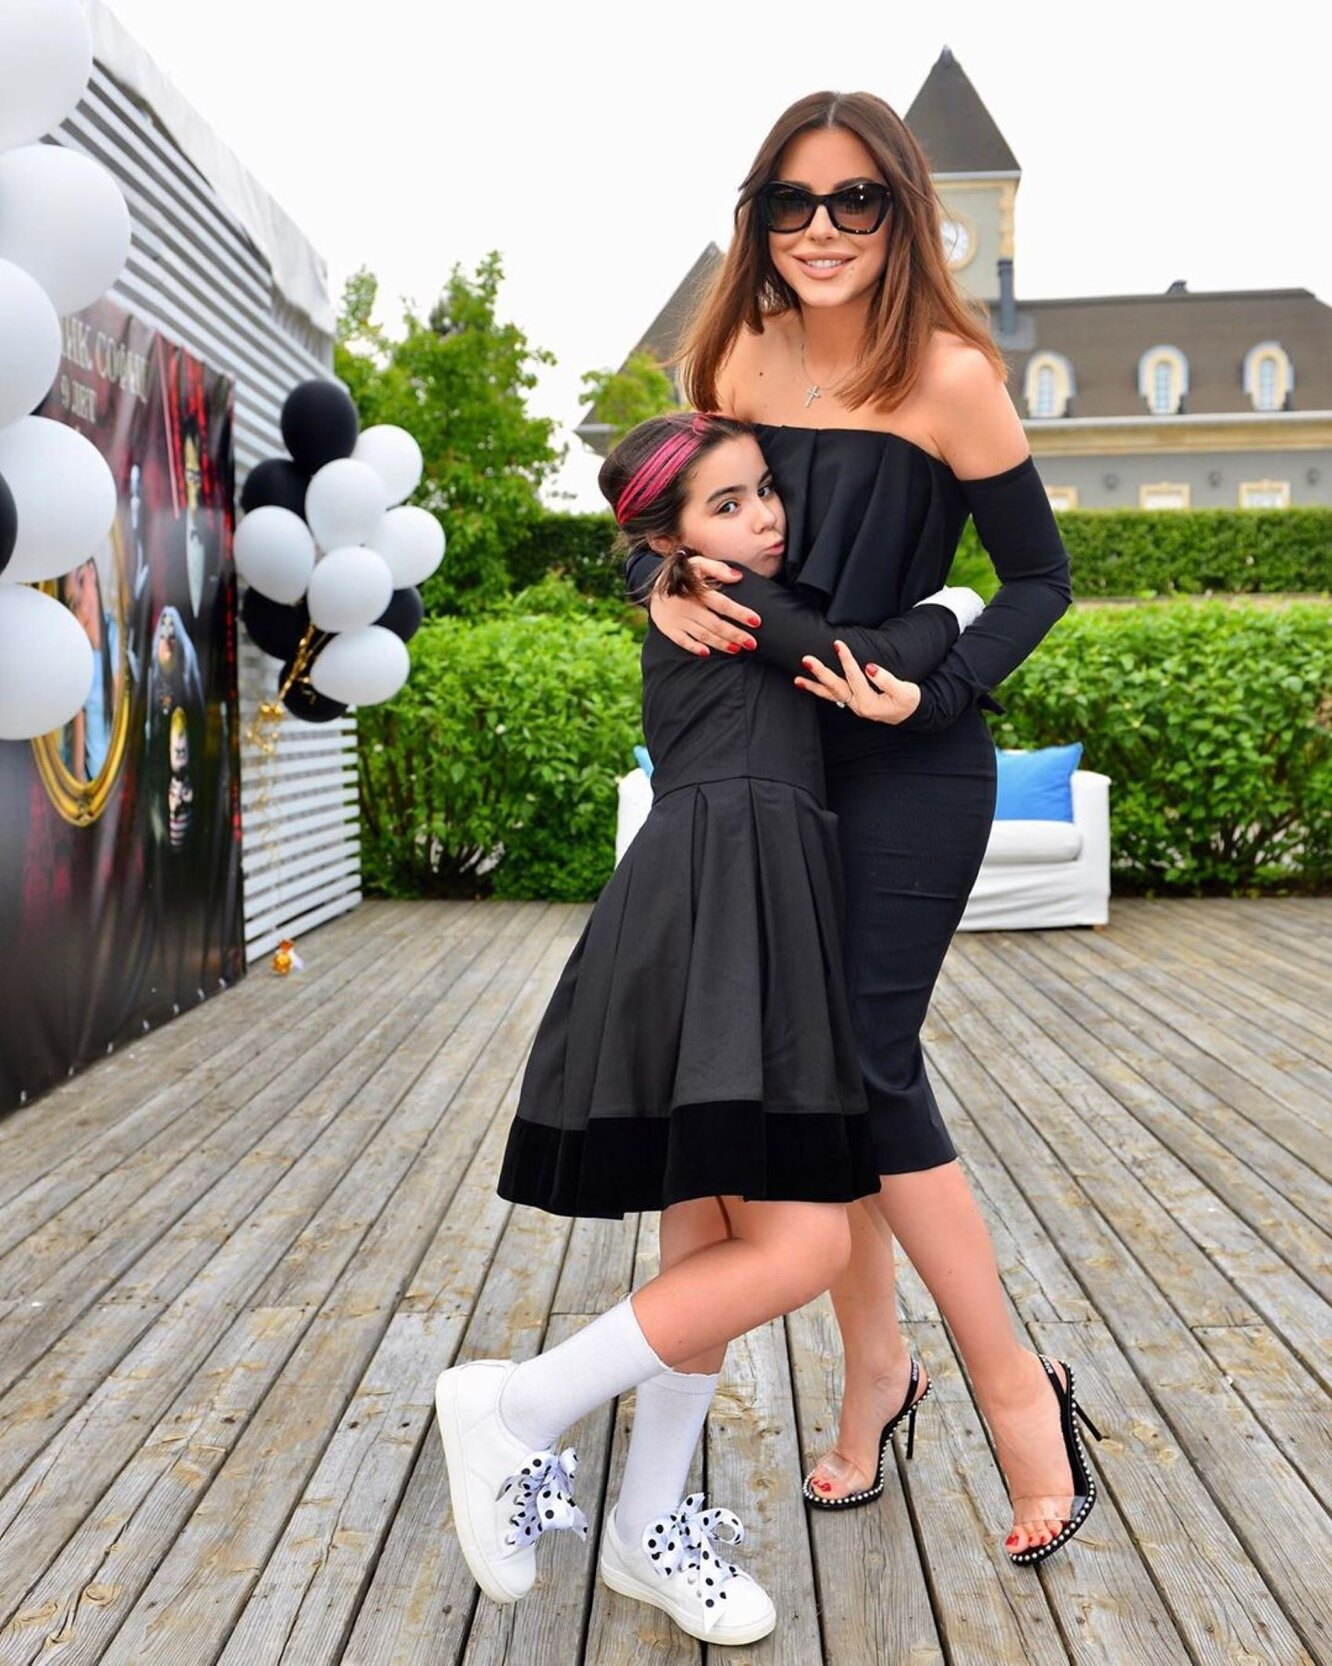 Ani Lorak first told how she survived her husband's betrayal